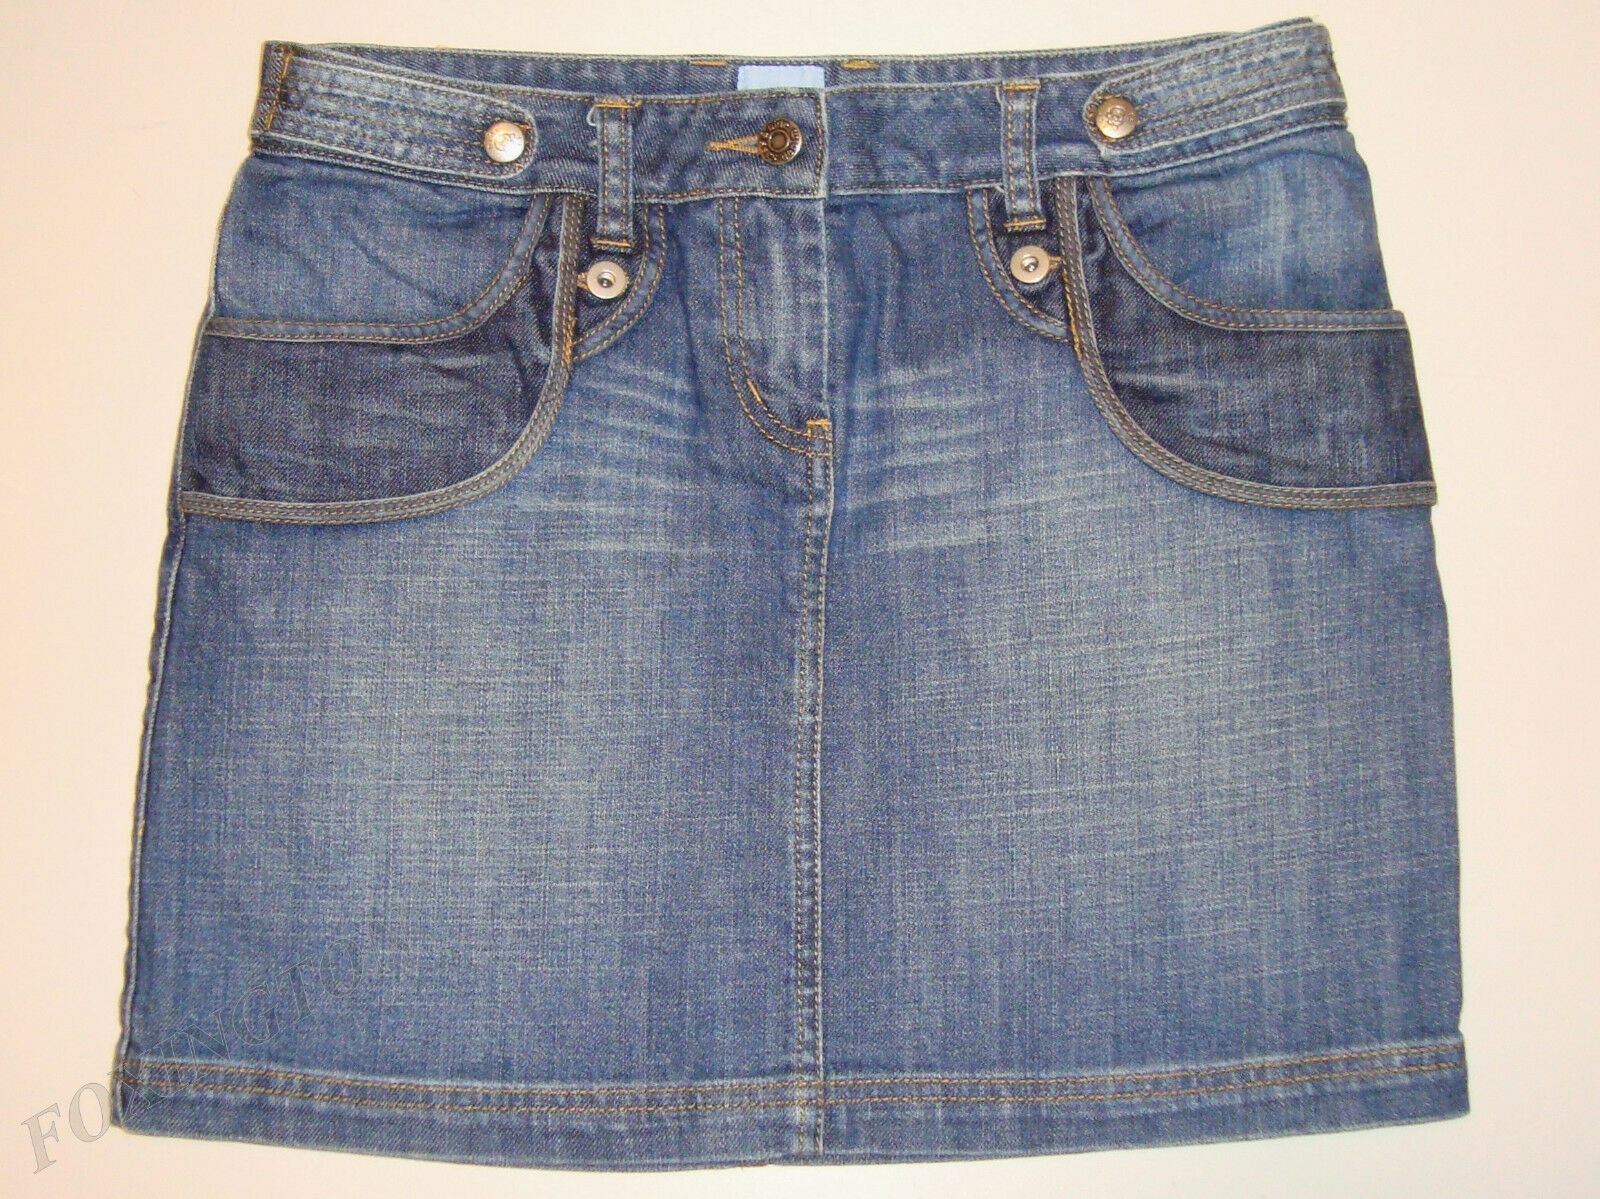 BEAUTIFUL SASS&BIDE VINTAGE blueE WASH DENIM SKIRT 28  MISSING IN MEXICO